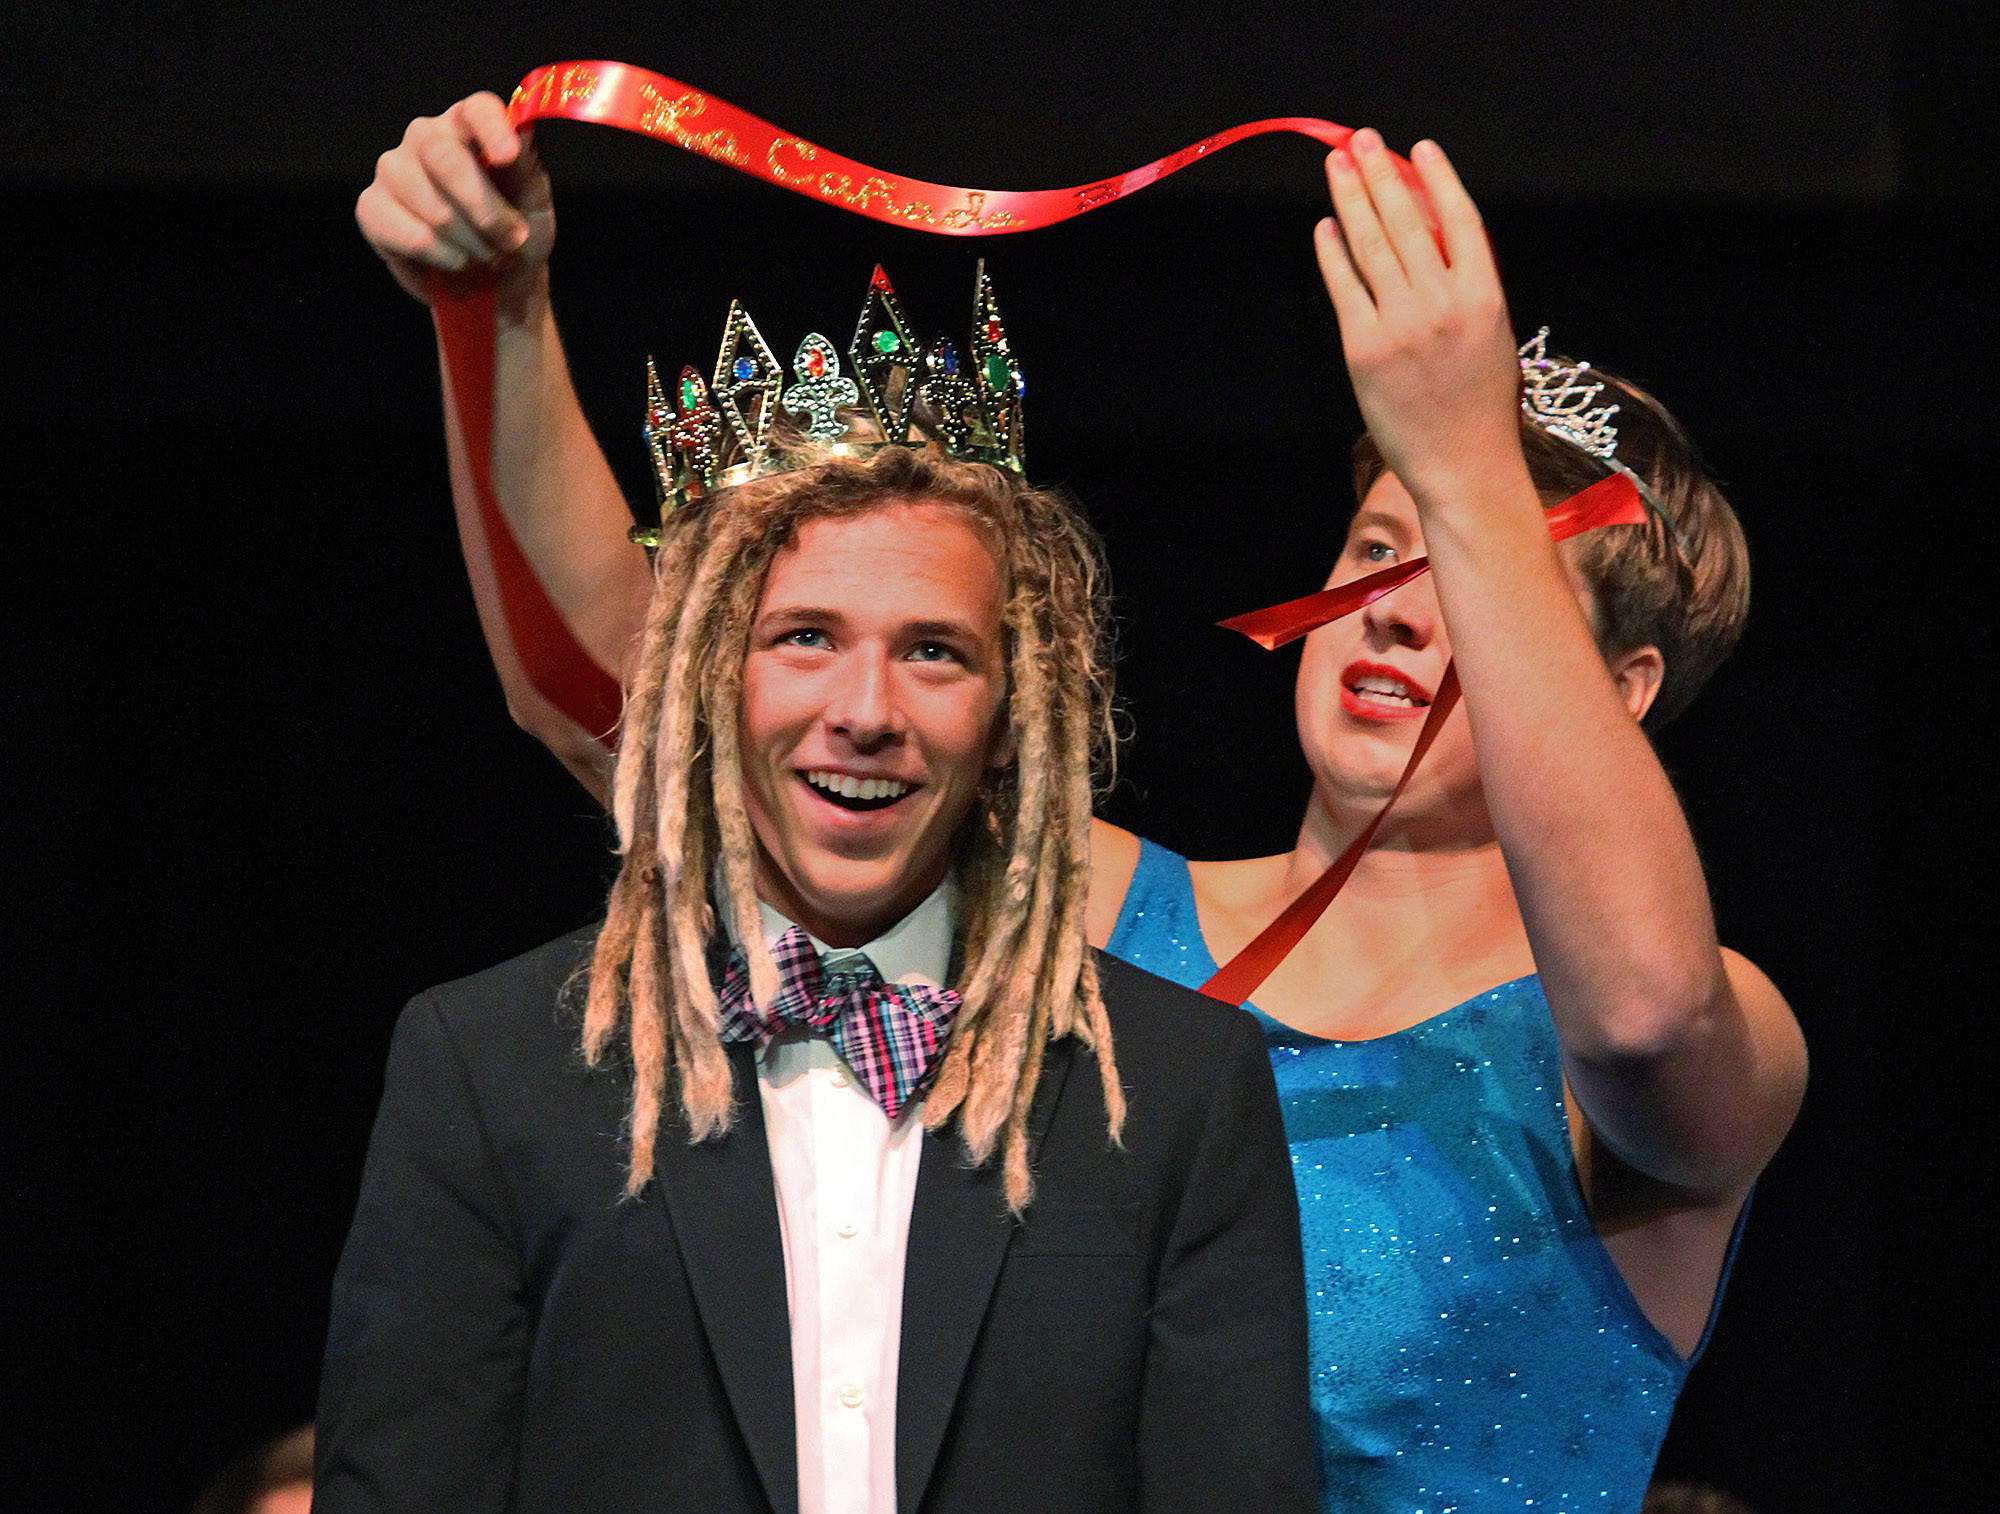 Griffin Van Amringe is crowned and sashed the winner of the contest by Reed Buck who is wearing a tiara and a dress in the first ever Mr. La Canada beauty pageant hosted by the La Canada High School' ASB on Friday, March 14, 2014. The pageant, which was at La Canada High School, was a fundraiser for the St. Baldrick's Foundation to Conquer Childhood Cancers.